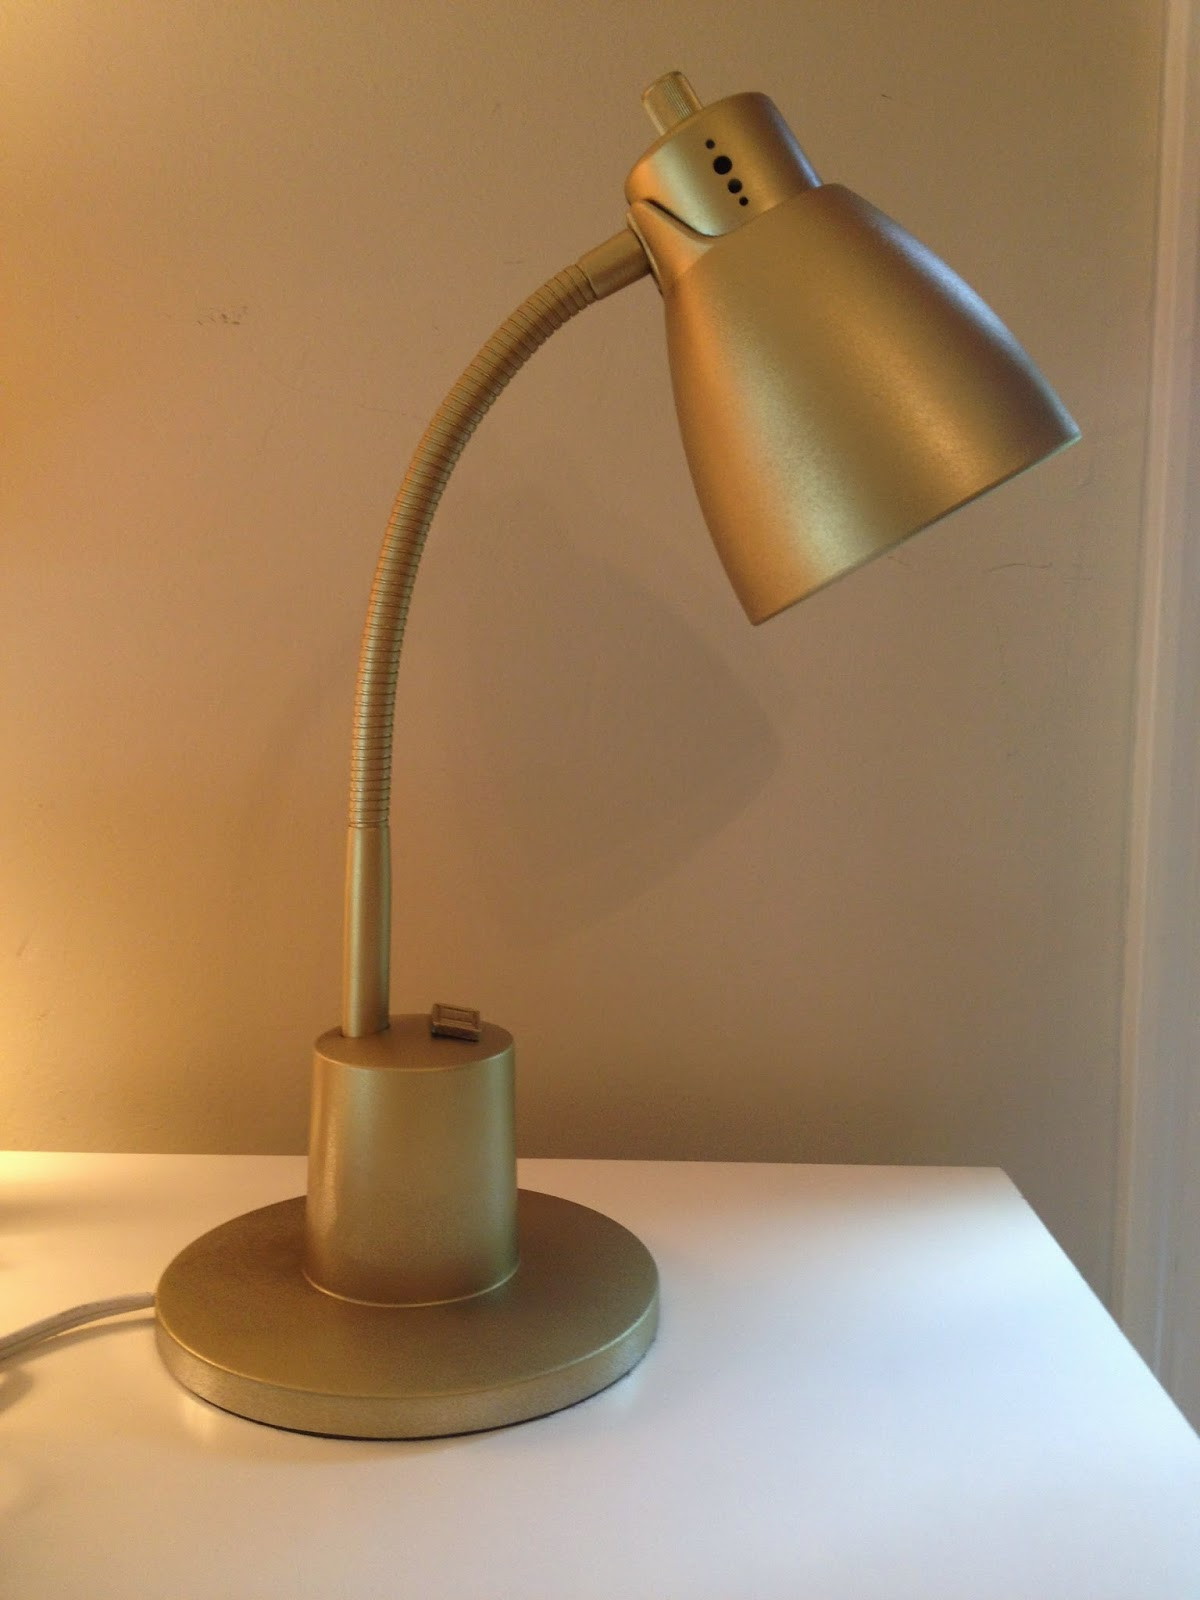 Best ideas about Diy Desk Lamp . Save or Pin Keep It Simple Now.